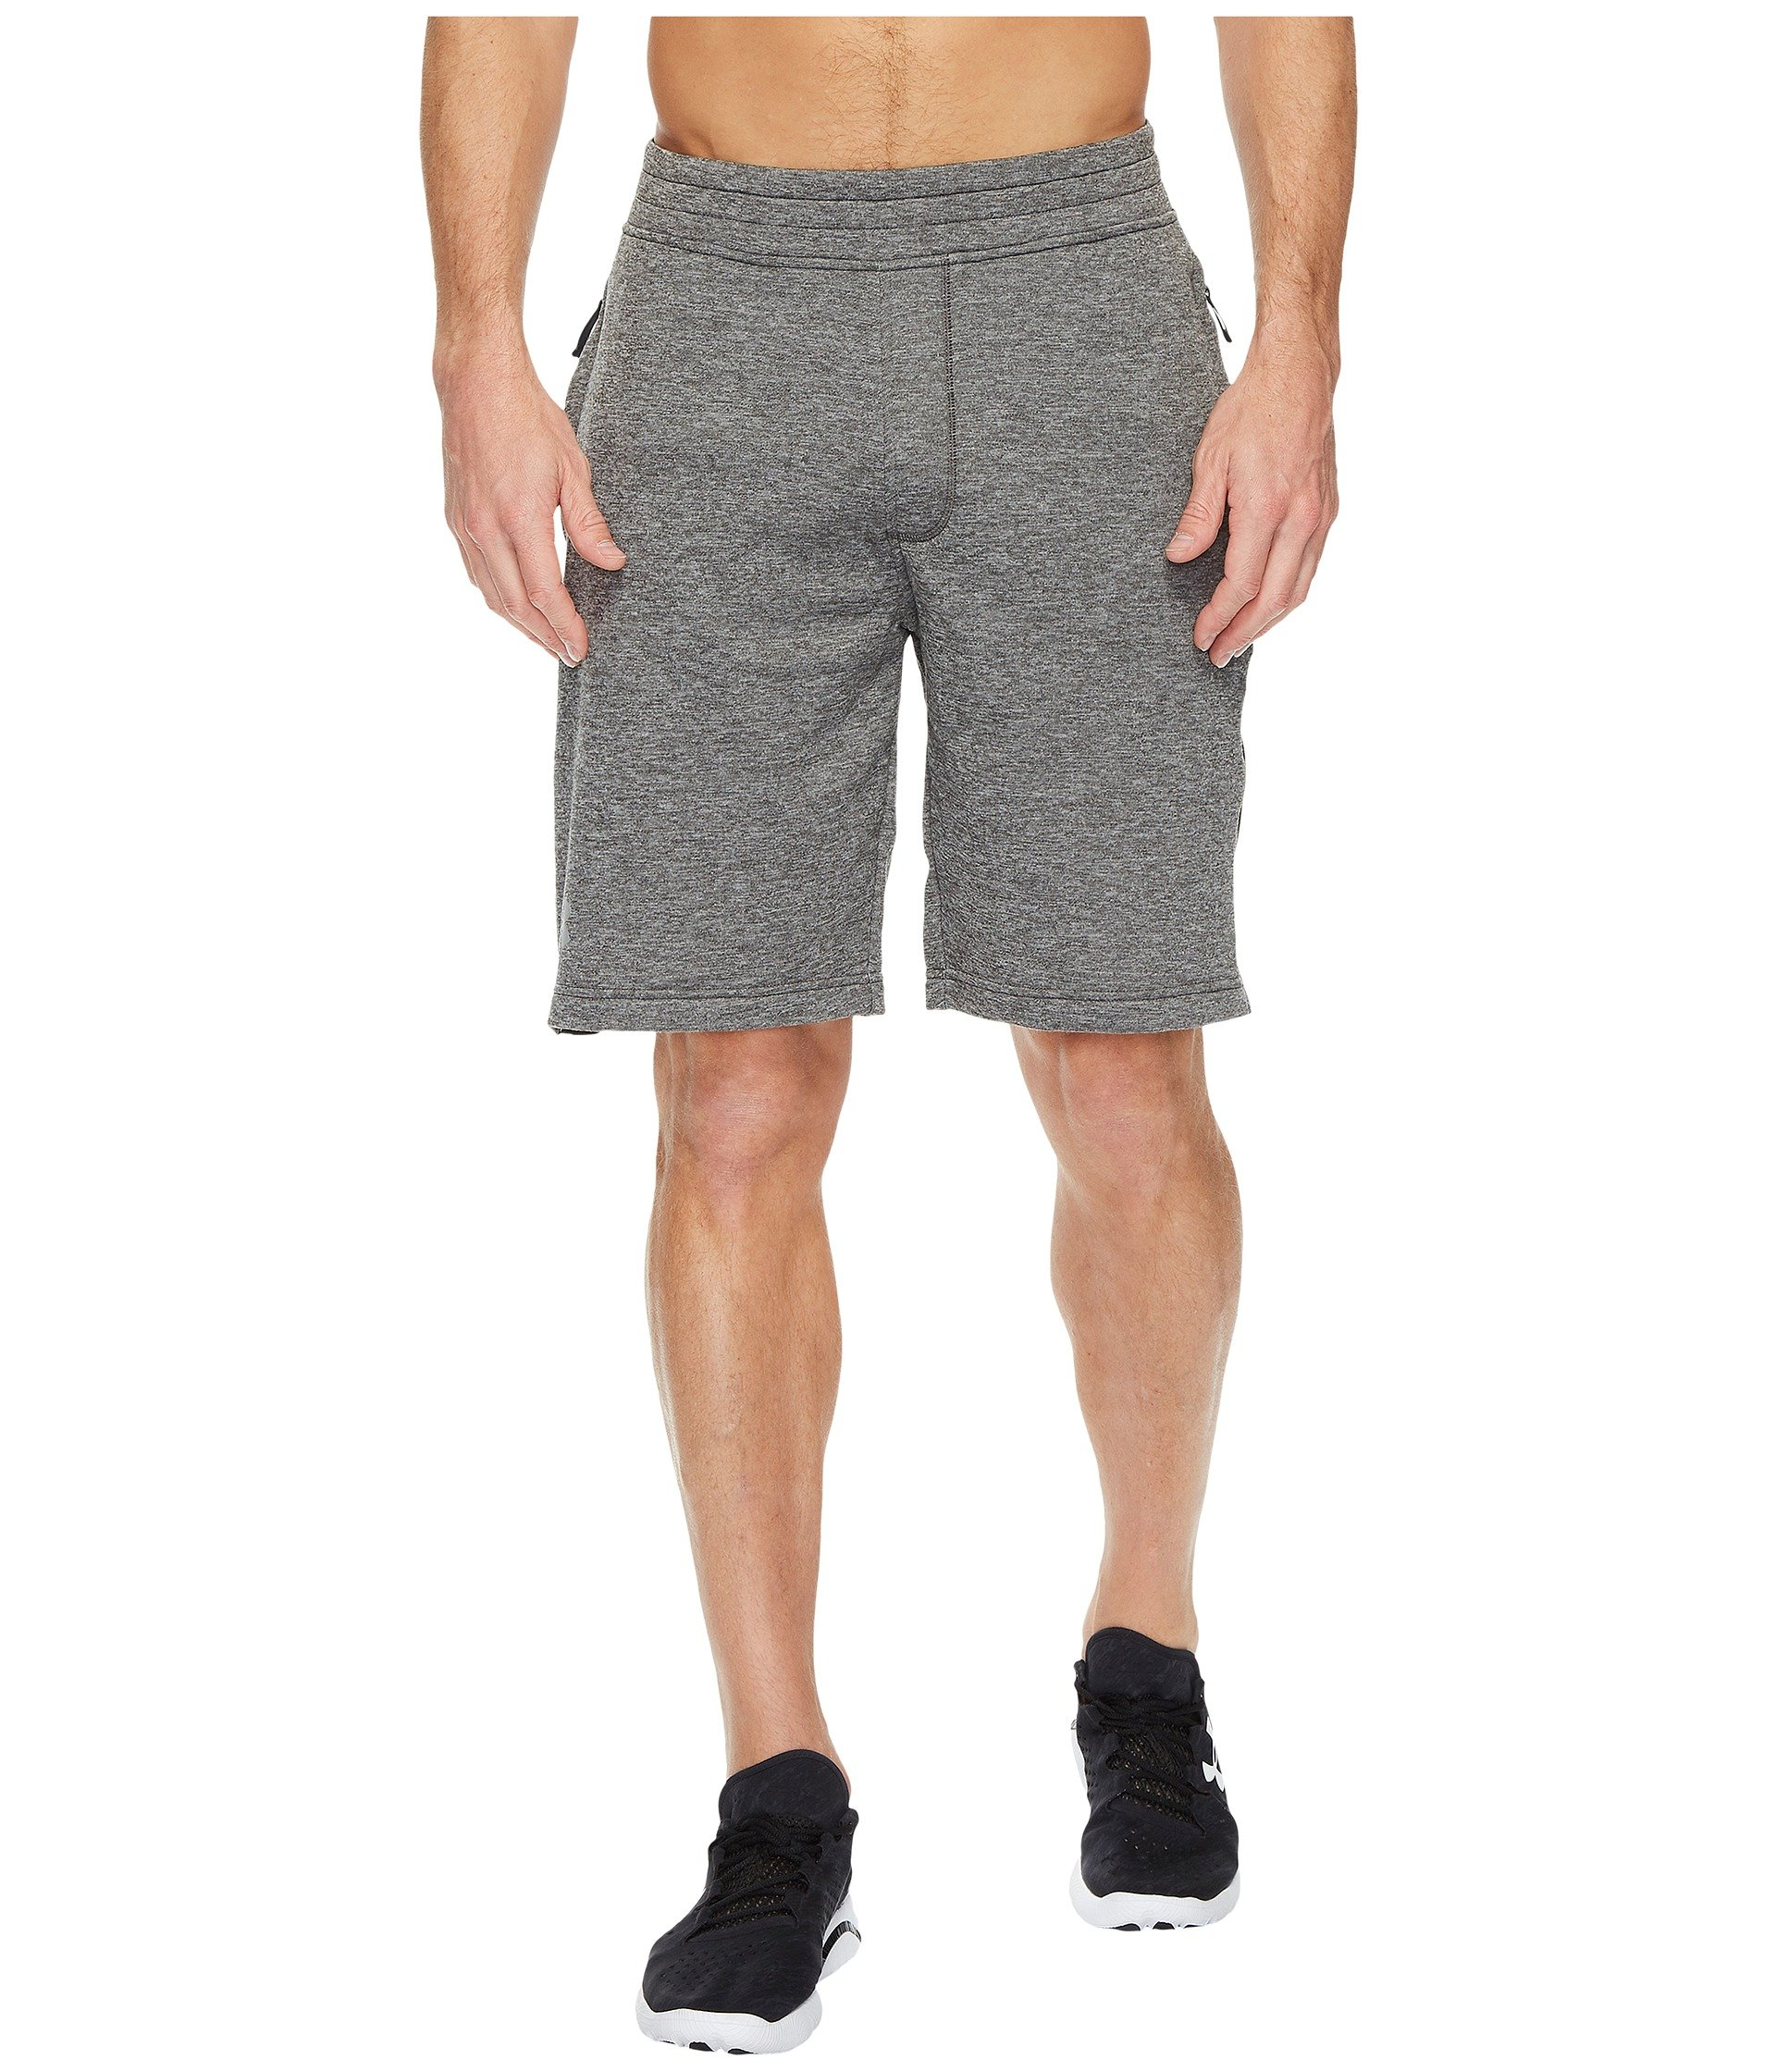 456aa82a Tech Terry Shorts, Carbon Heather/Black/Silver